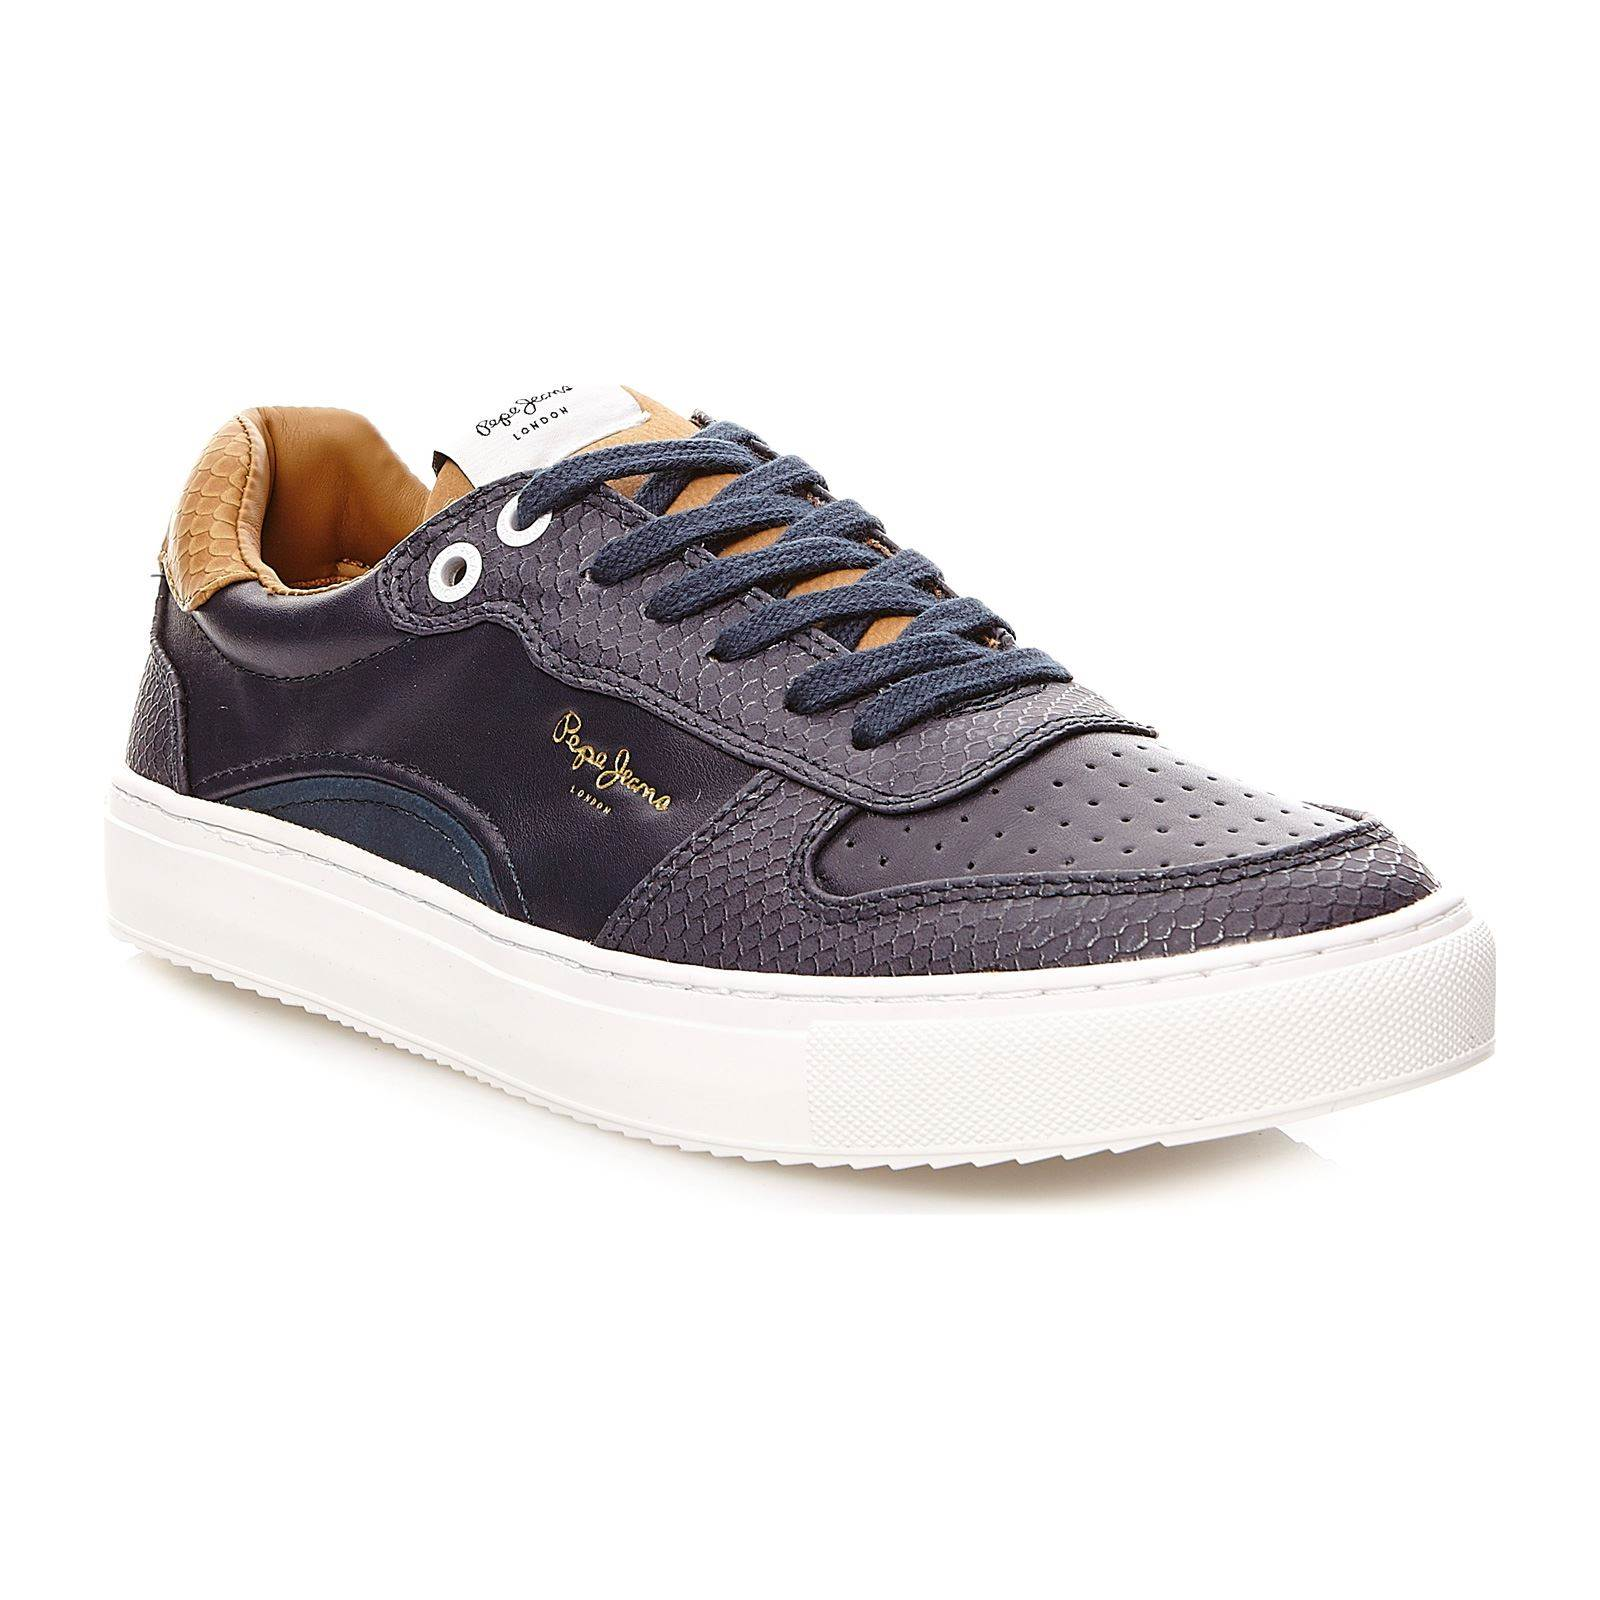 Pepe Jeans Footwear Adams Smart - Sneakers - bleu marine